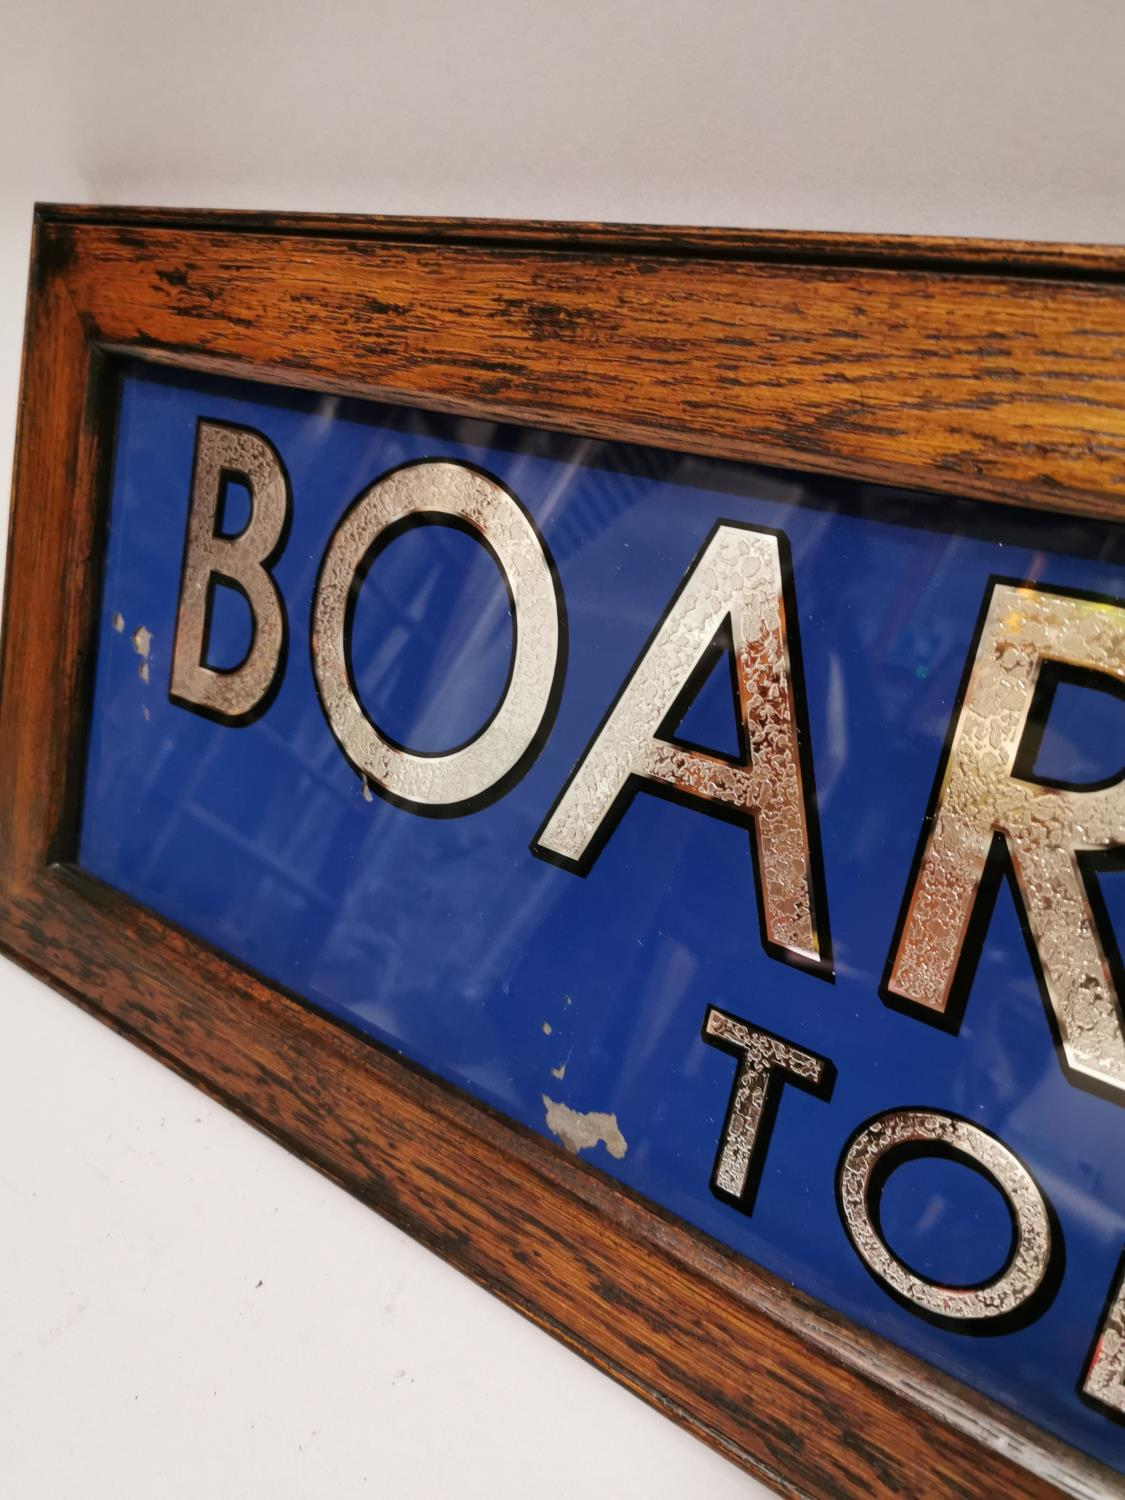 Boar's Head tobacco advertising sign. - Image 2 of 4